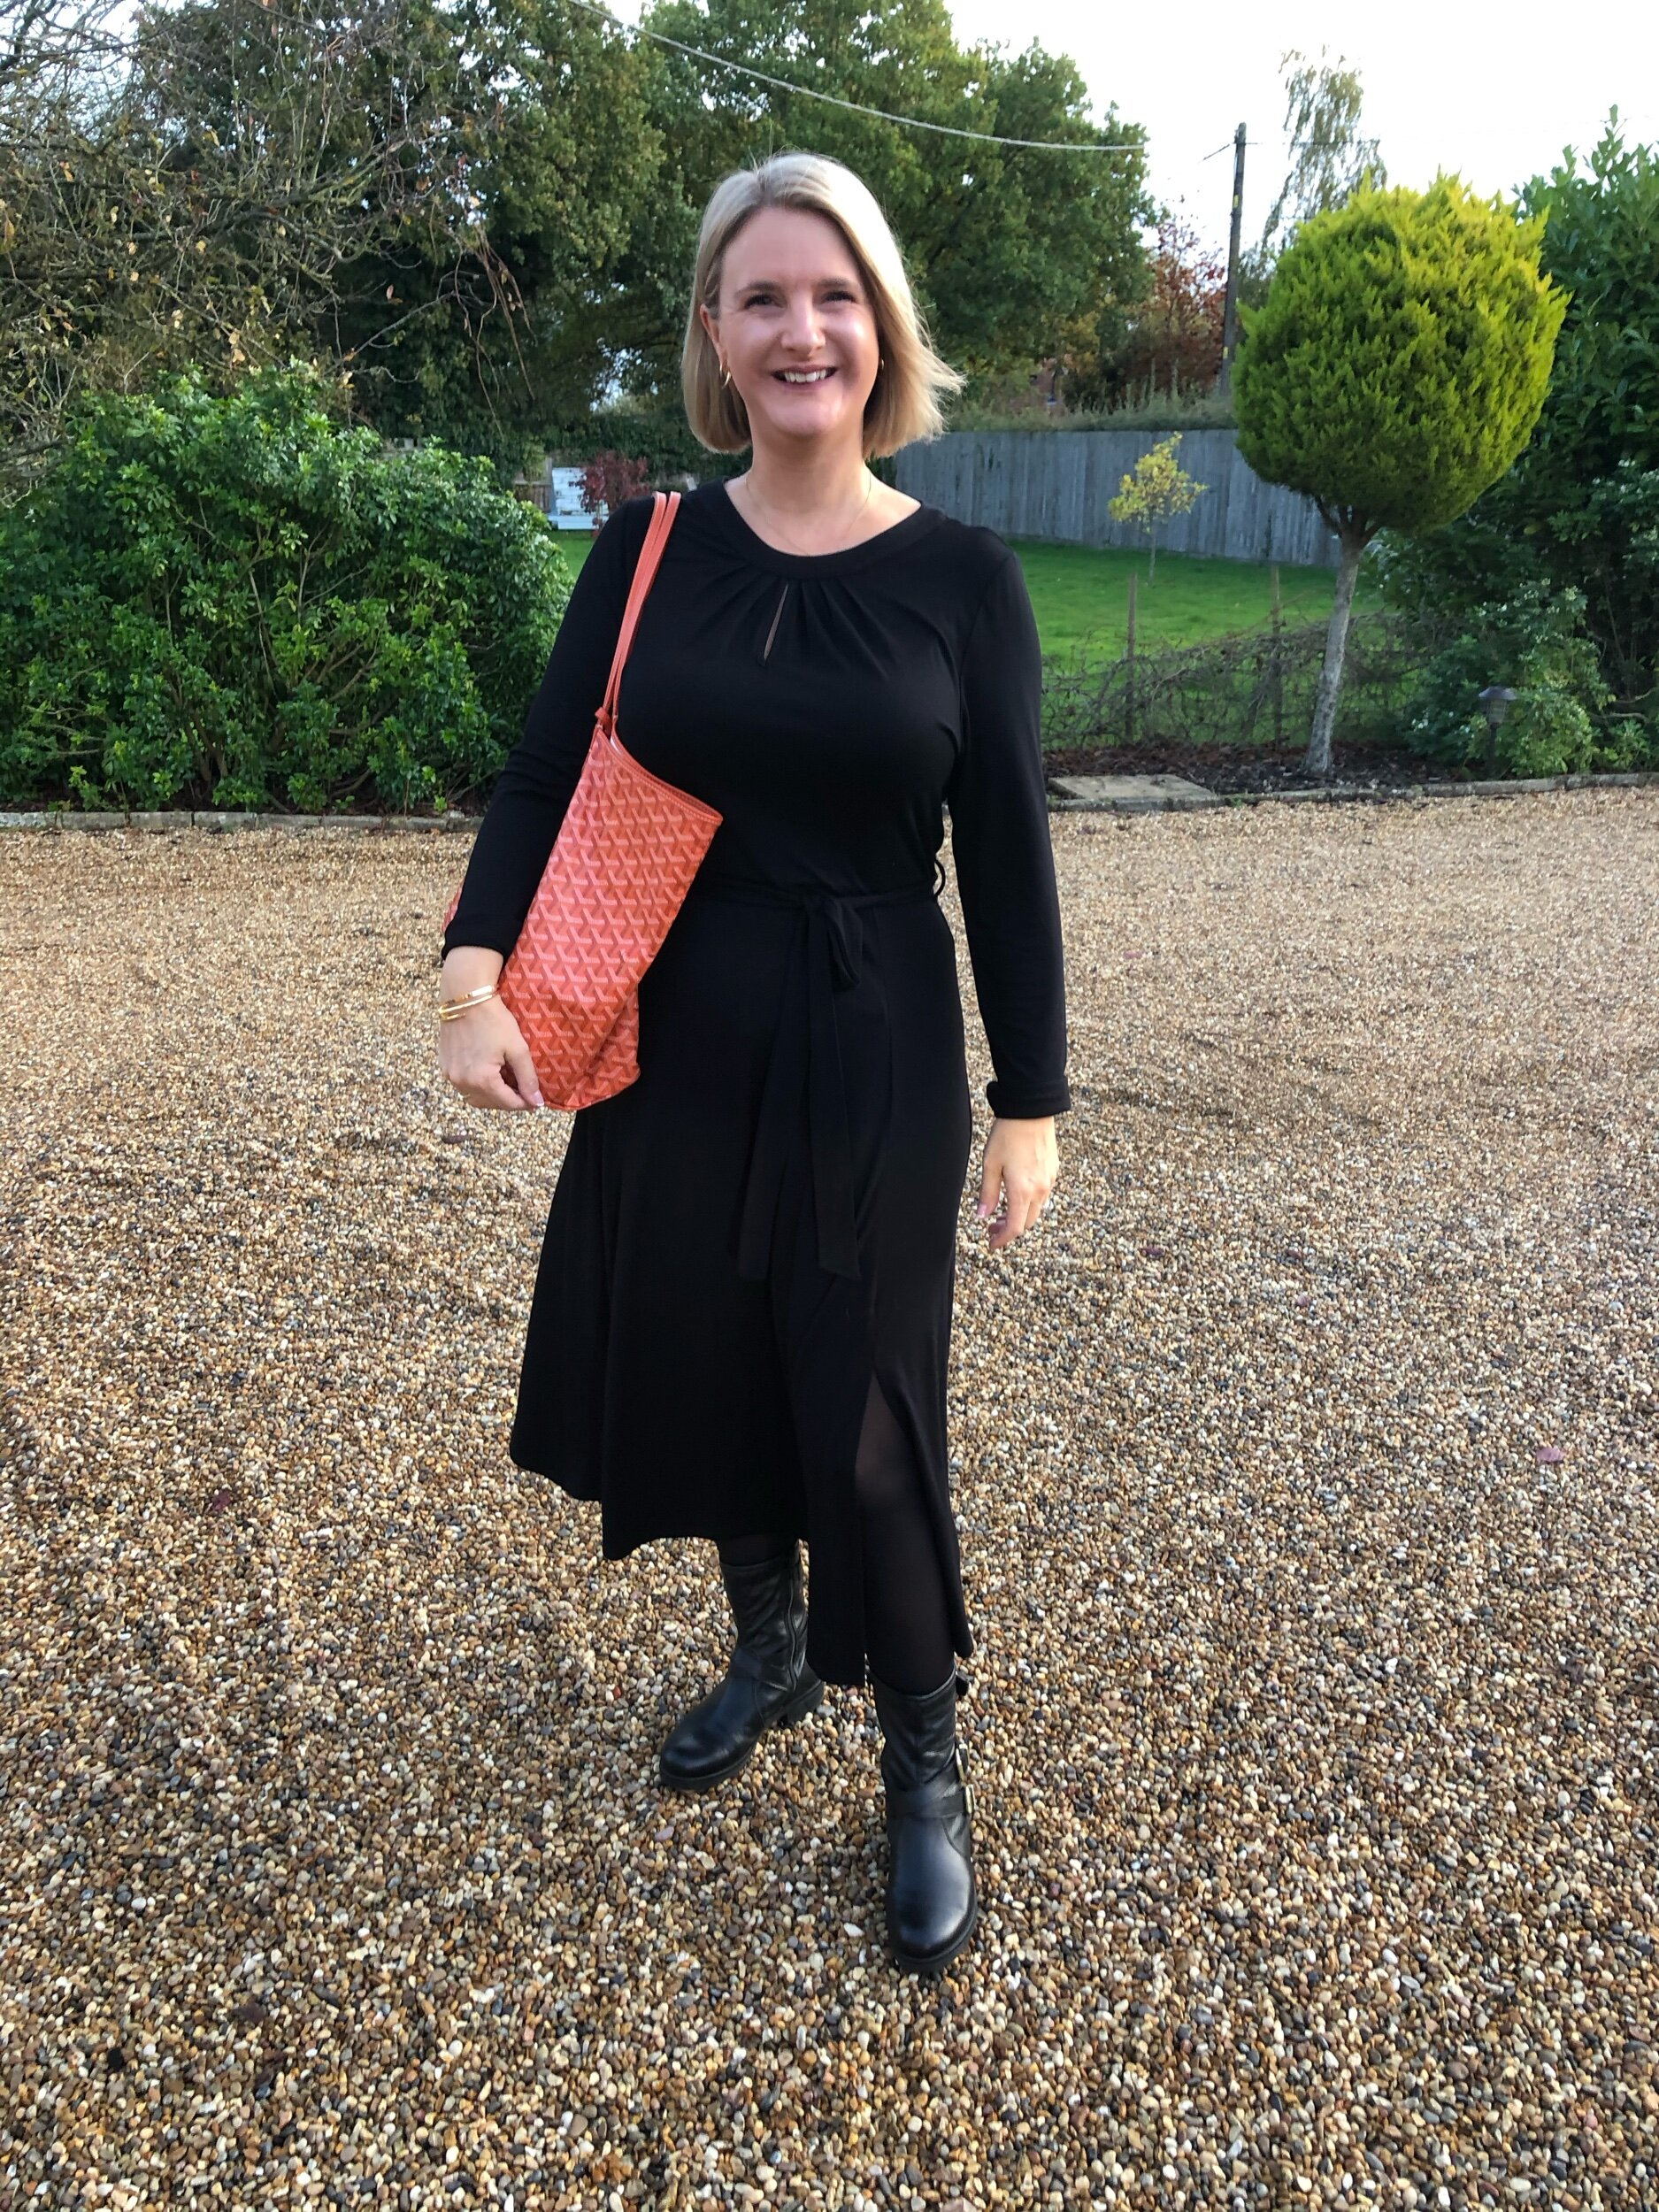 Dress from Dorothy Perkins, tights from Tesco, Boots from Kurt Geiger and bag from Goyard.